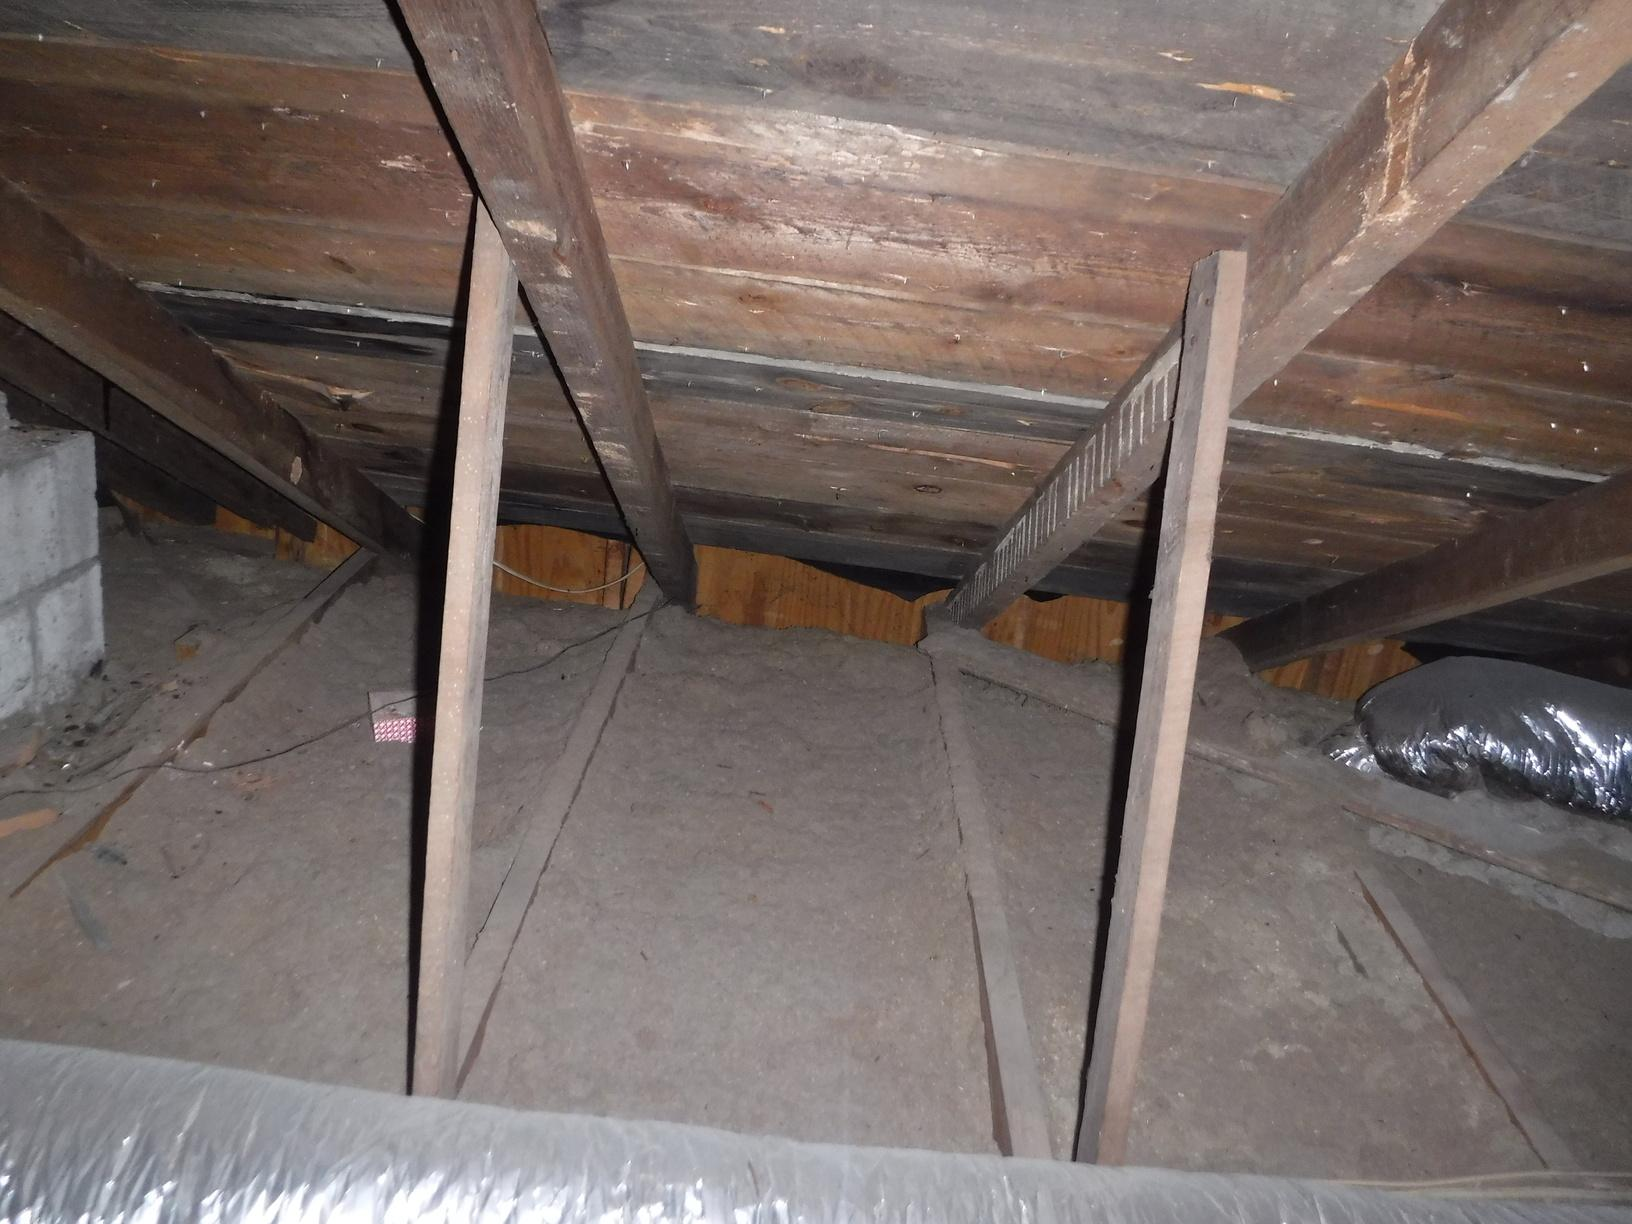 Attic Insulation upgrades in Charlotte NC - Before Photo